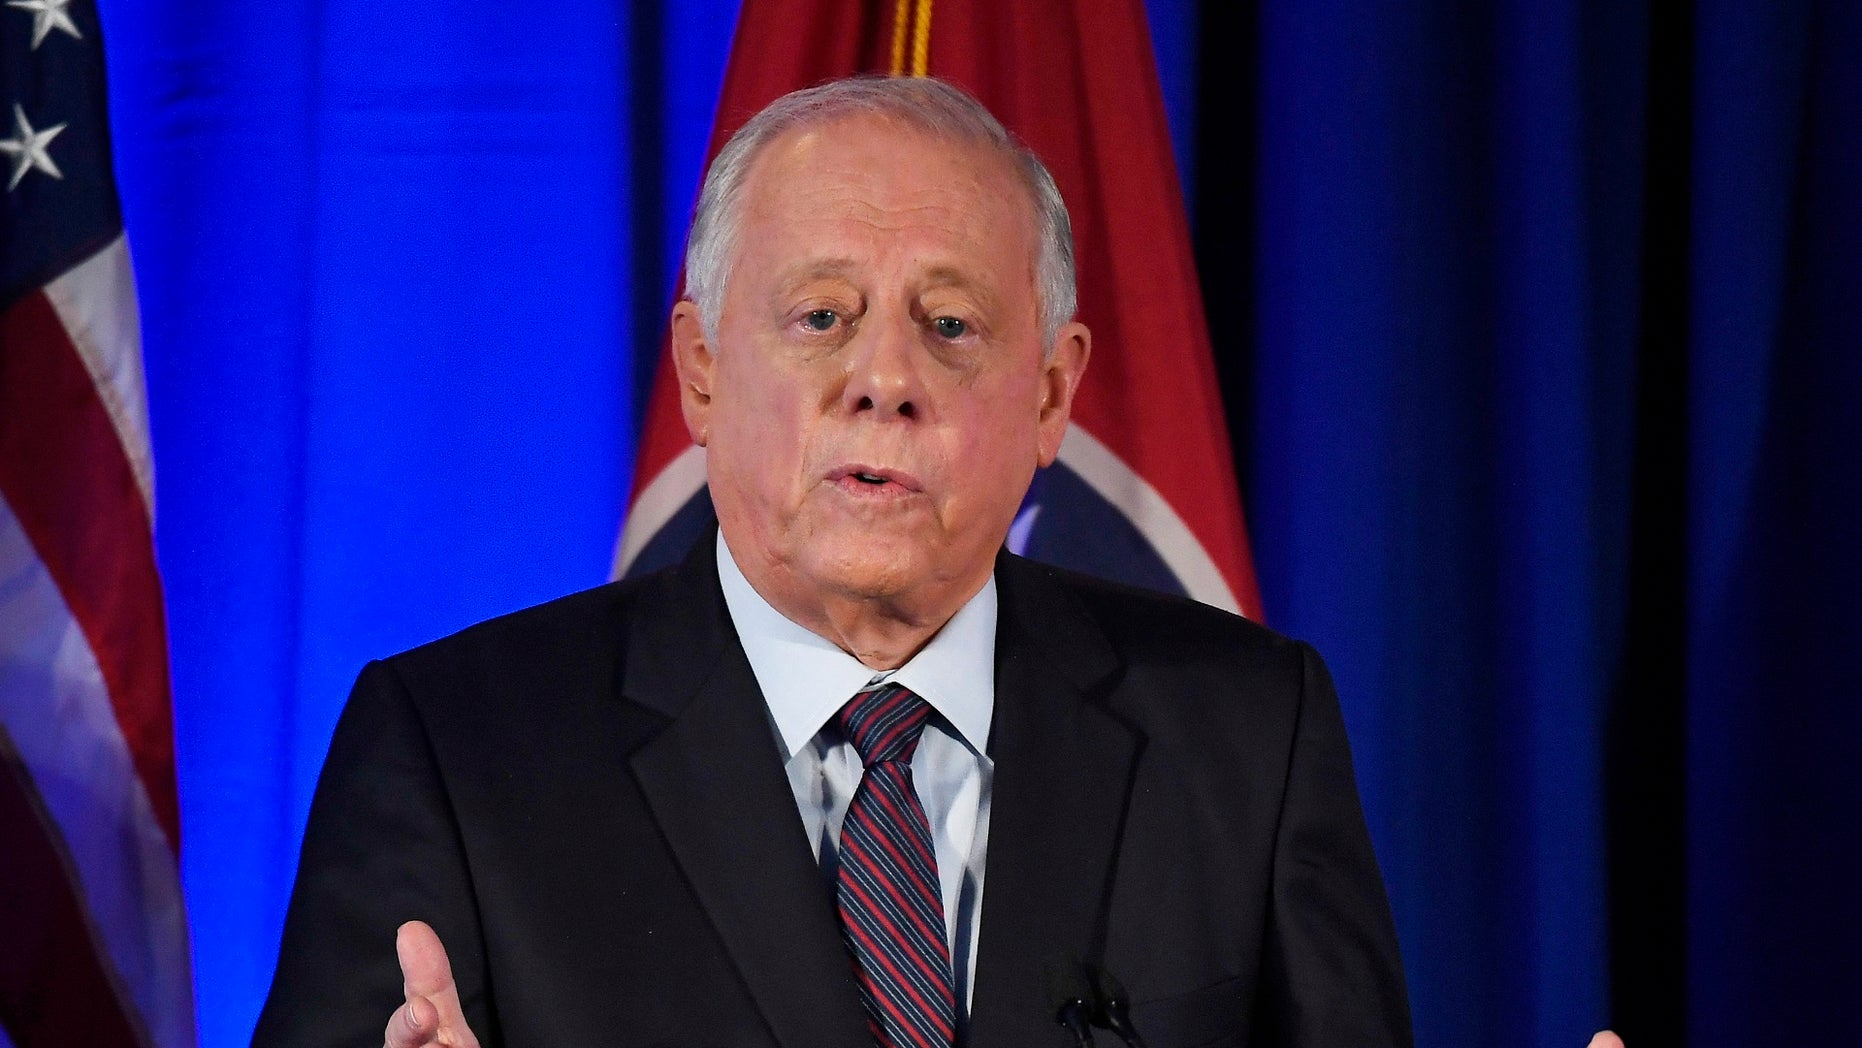 Democratic candidate and former Gov. Phil Bredesen speaks at the 2018 Tennessee U.S. Senate Debate against Republican U.S. Rep. Marsha Blackburn at Cumberland University Tuesday, Sept. 25, 2018, in Lebanon, Tenn. (Lacy Atkins/The Tennessean via AP, Pool)